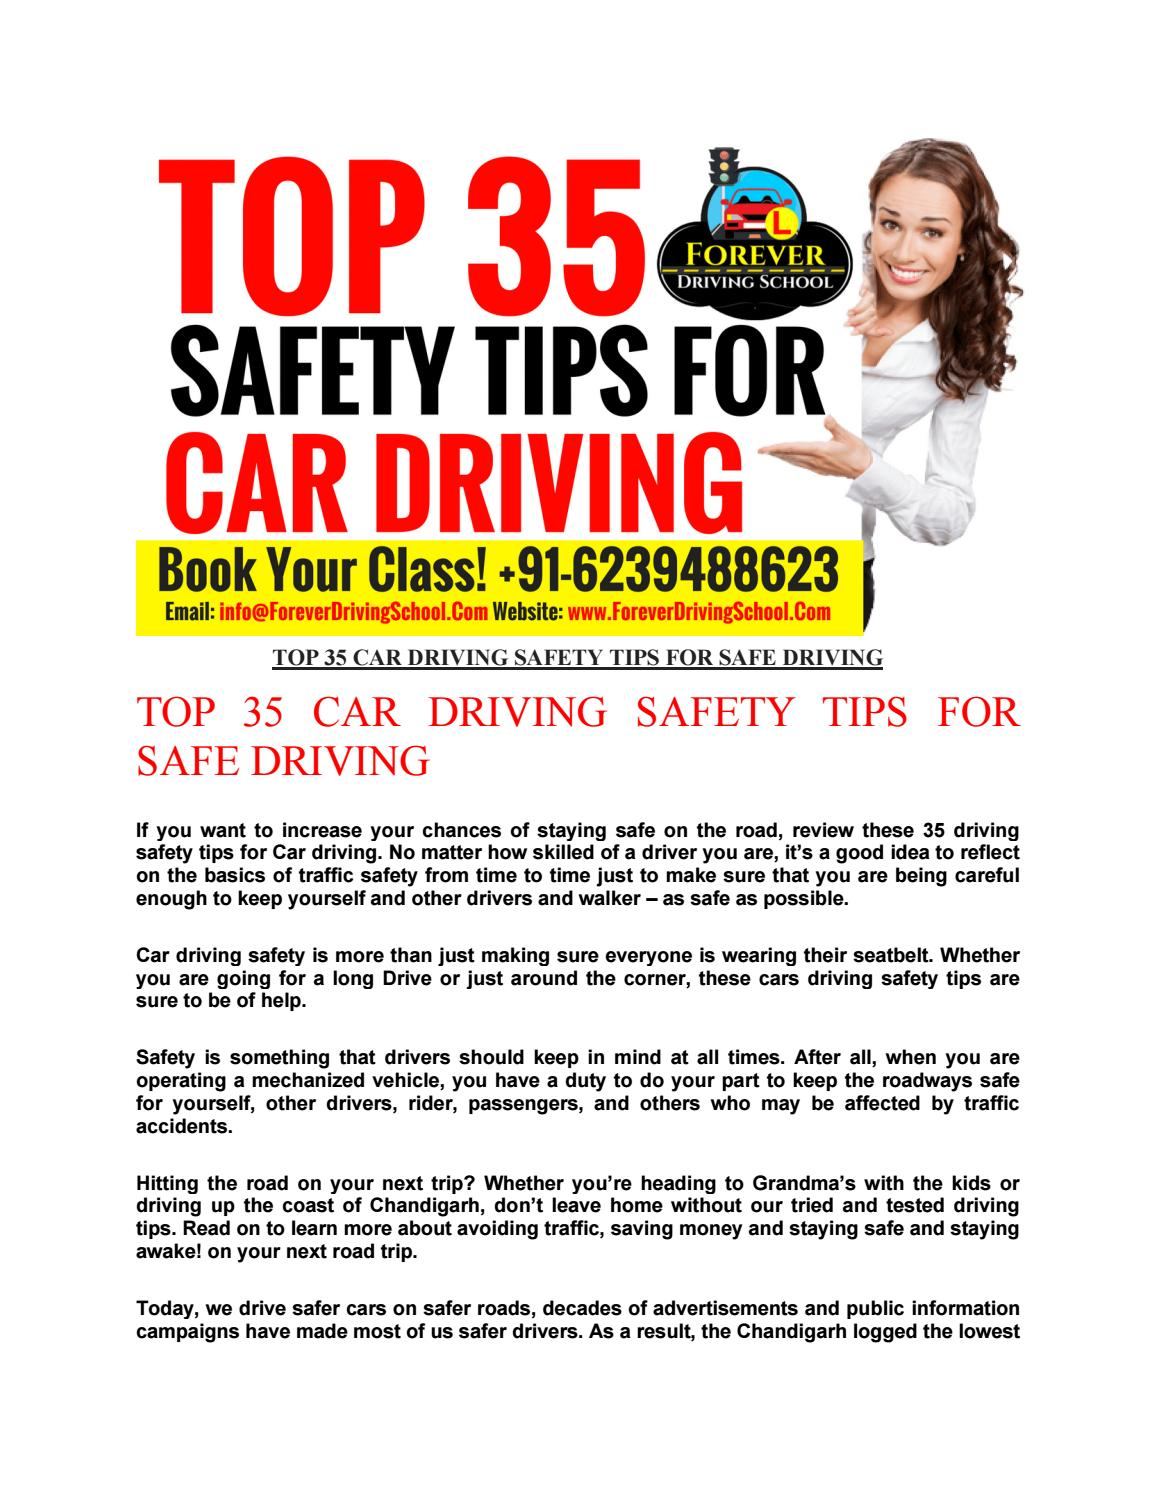 Top 35 car driving safety tips for safe driving by Hitesh Gaur - Issuu